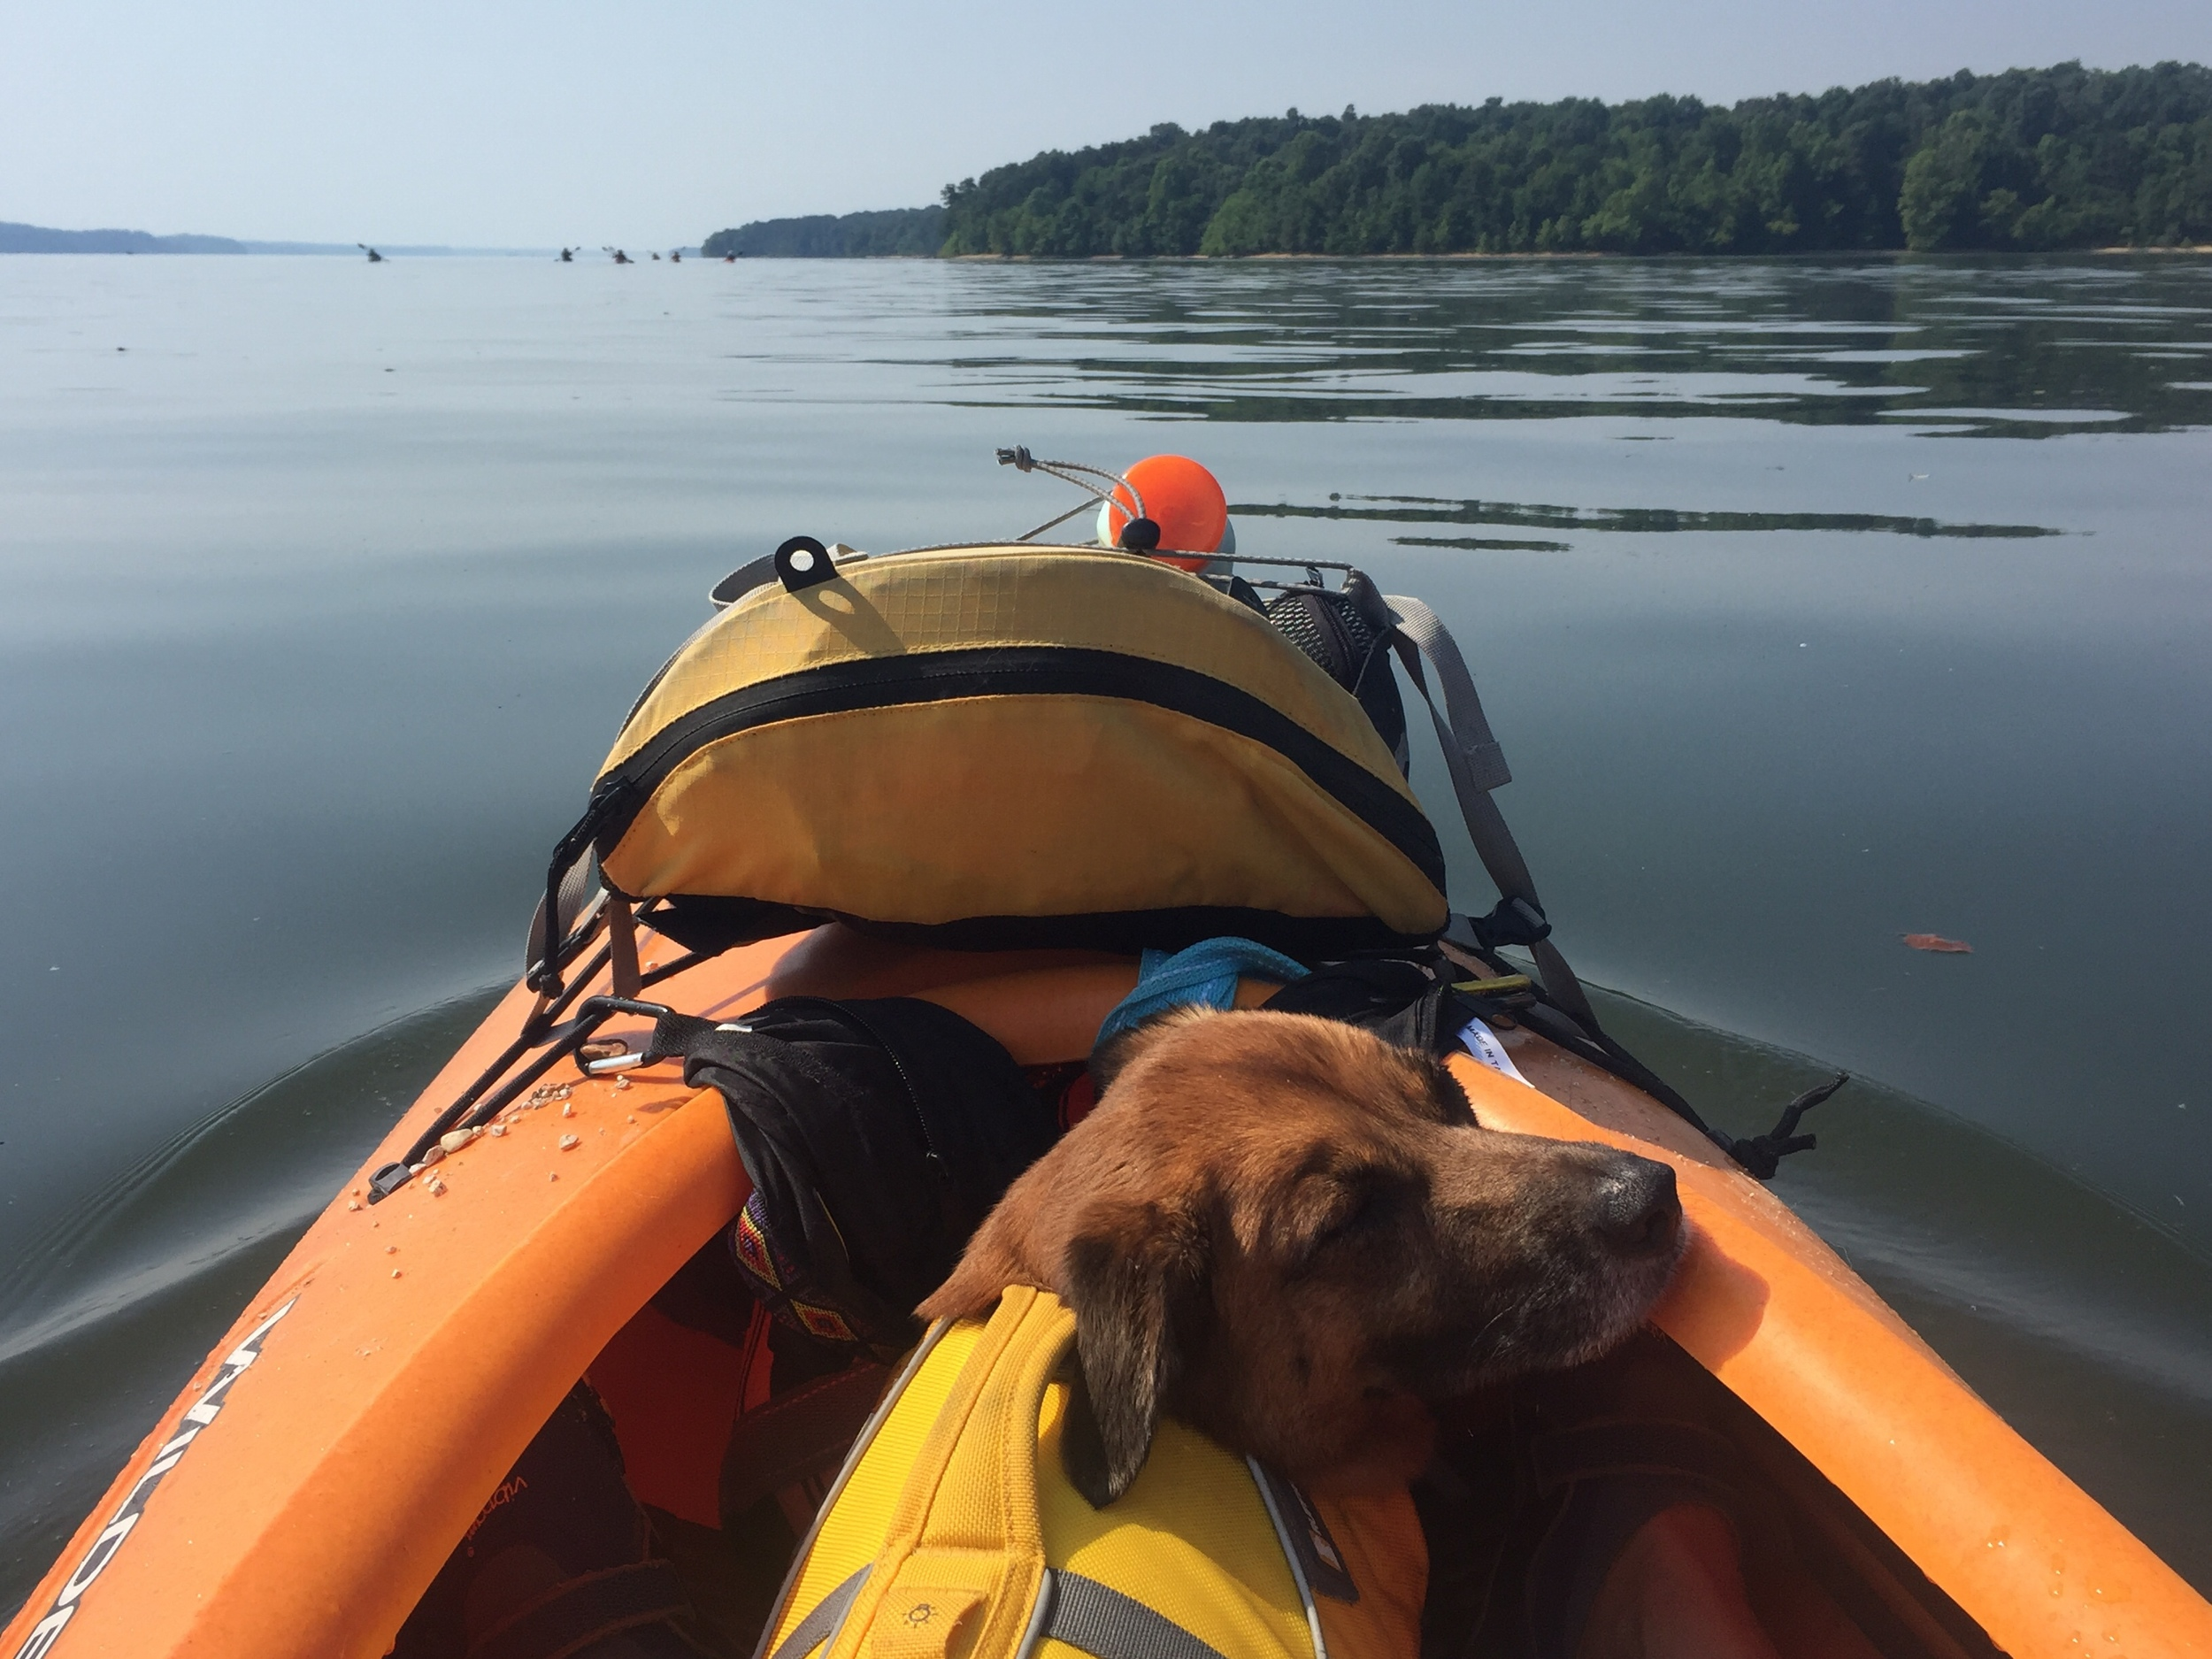 Maddy spent the trip swimming and and kayaking. Photo by Kimberly Bischoff.